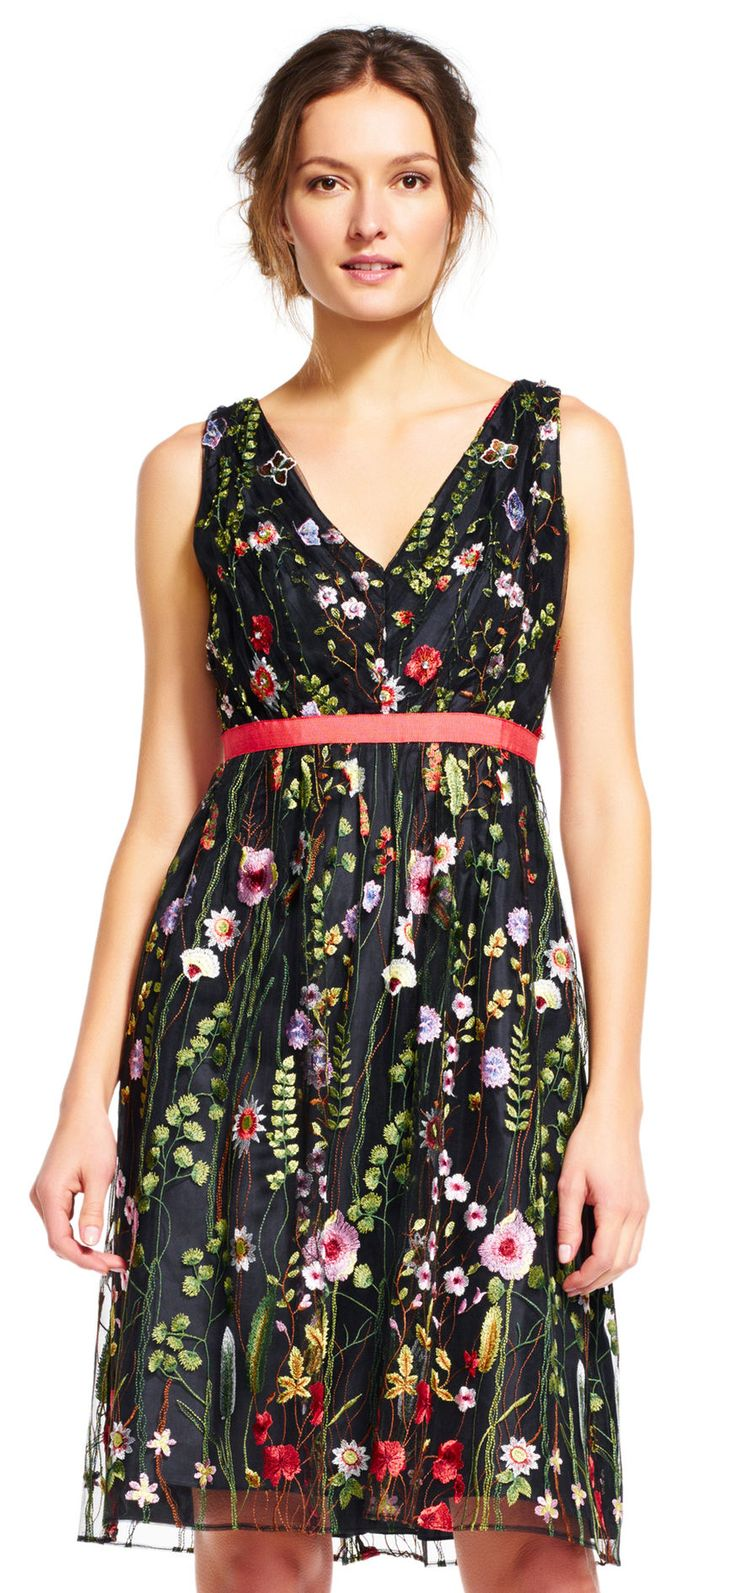 Bright floral embroidery has this dress hitting every trend this season. Featuing a v-neckline, figure-enhancing empire waist, and a sleeveless bodice, this romantic party dress will perfectly tend to your night out. Crafted from gauzy tulle, this style is simply stunning. This party dress is complete with a sparkly or neutral high heel.